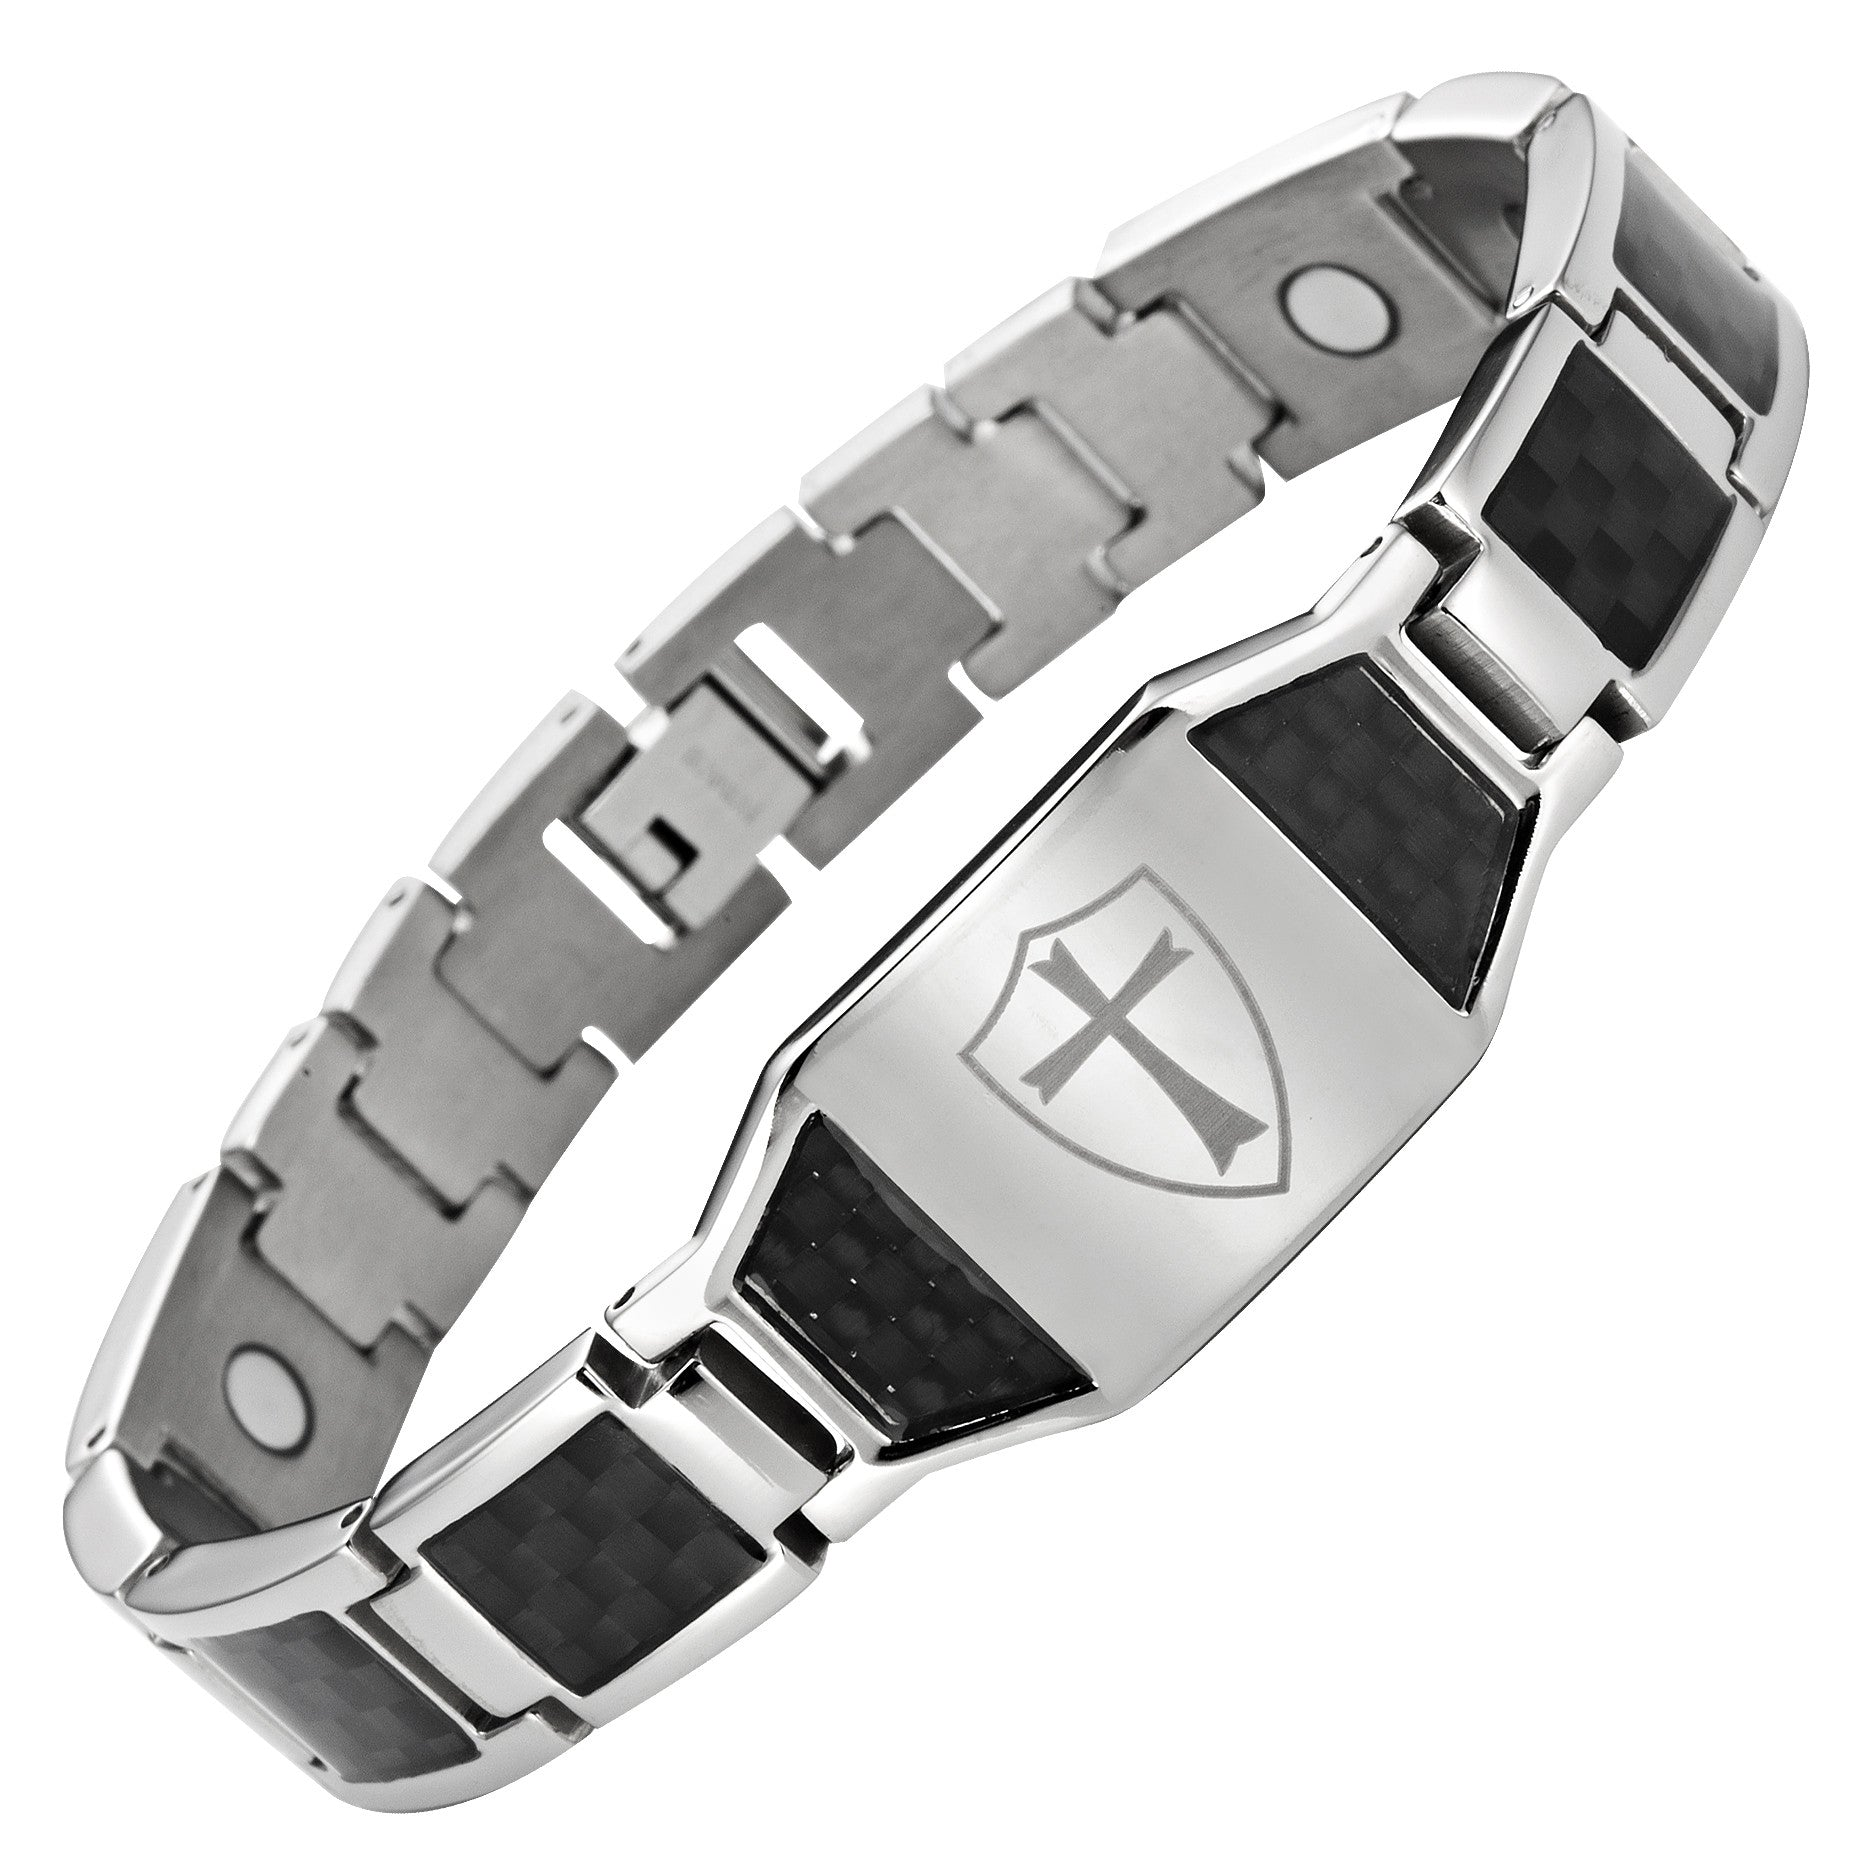 Titanium Magnetic Bracelet With Knights Templar Cross Shield Gift Box